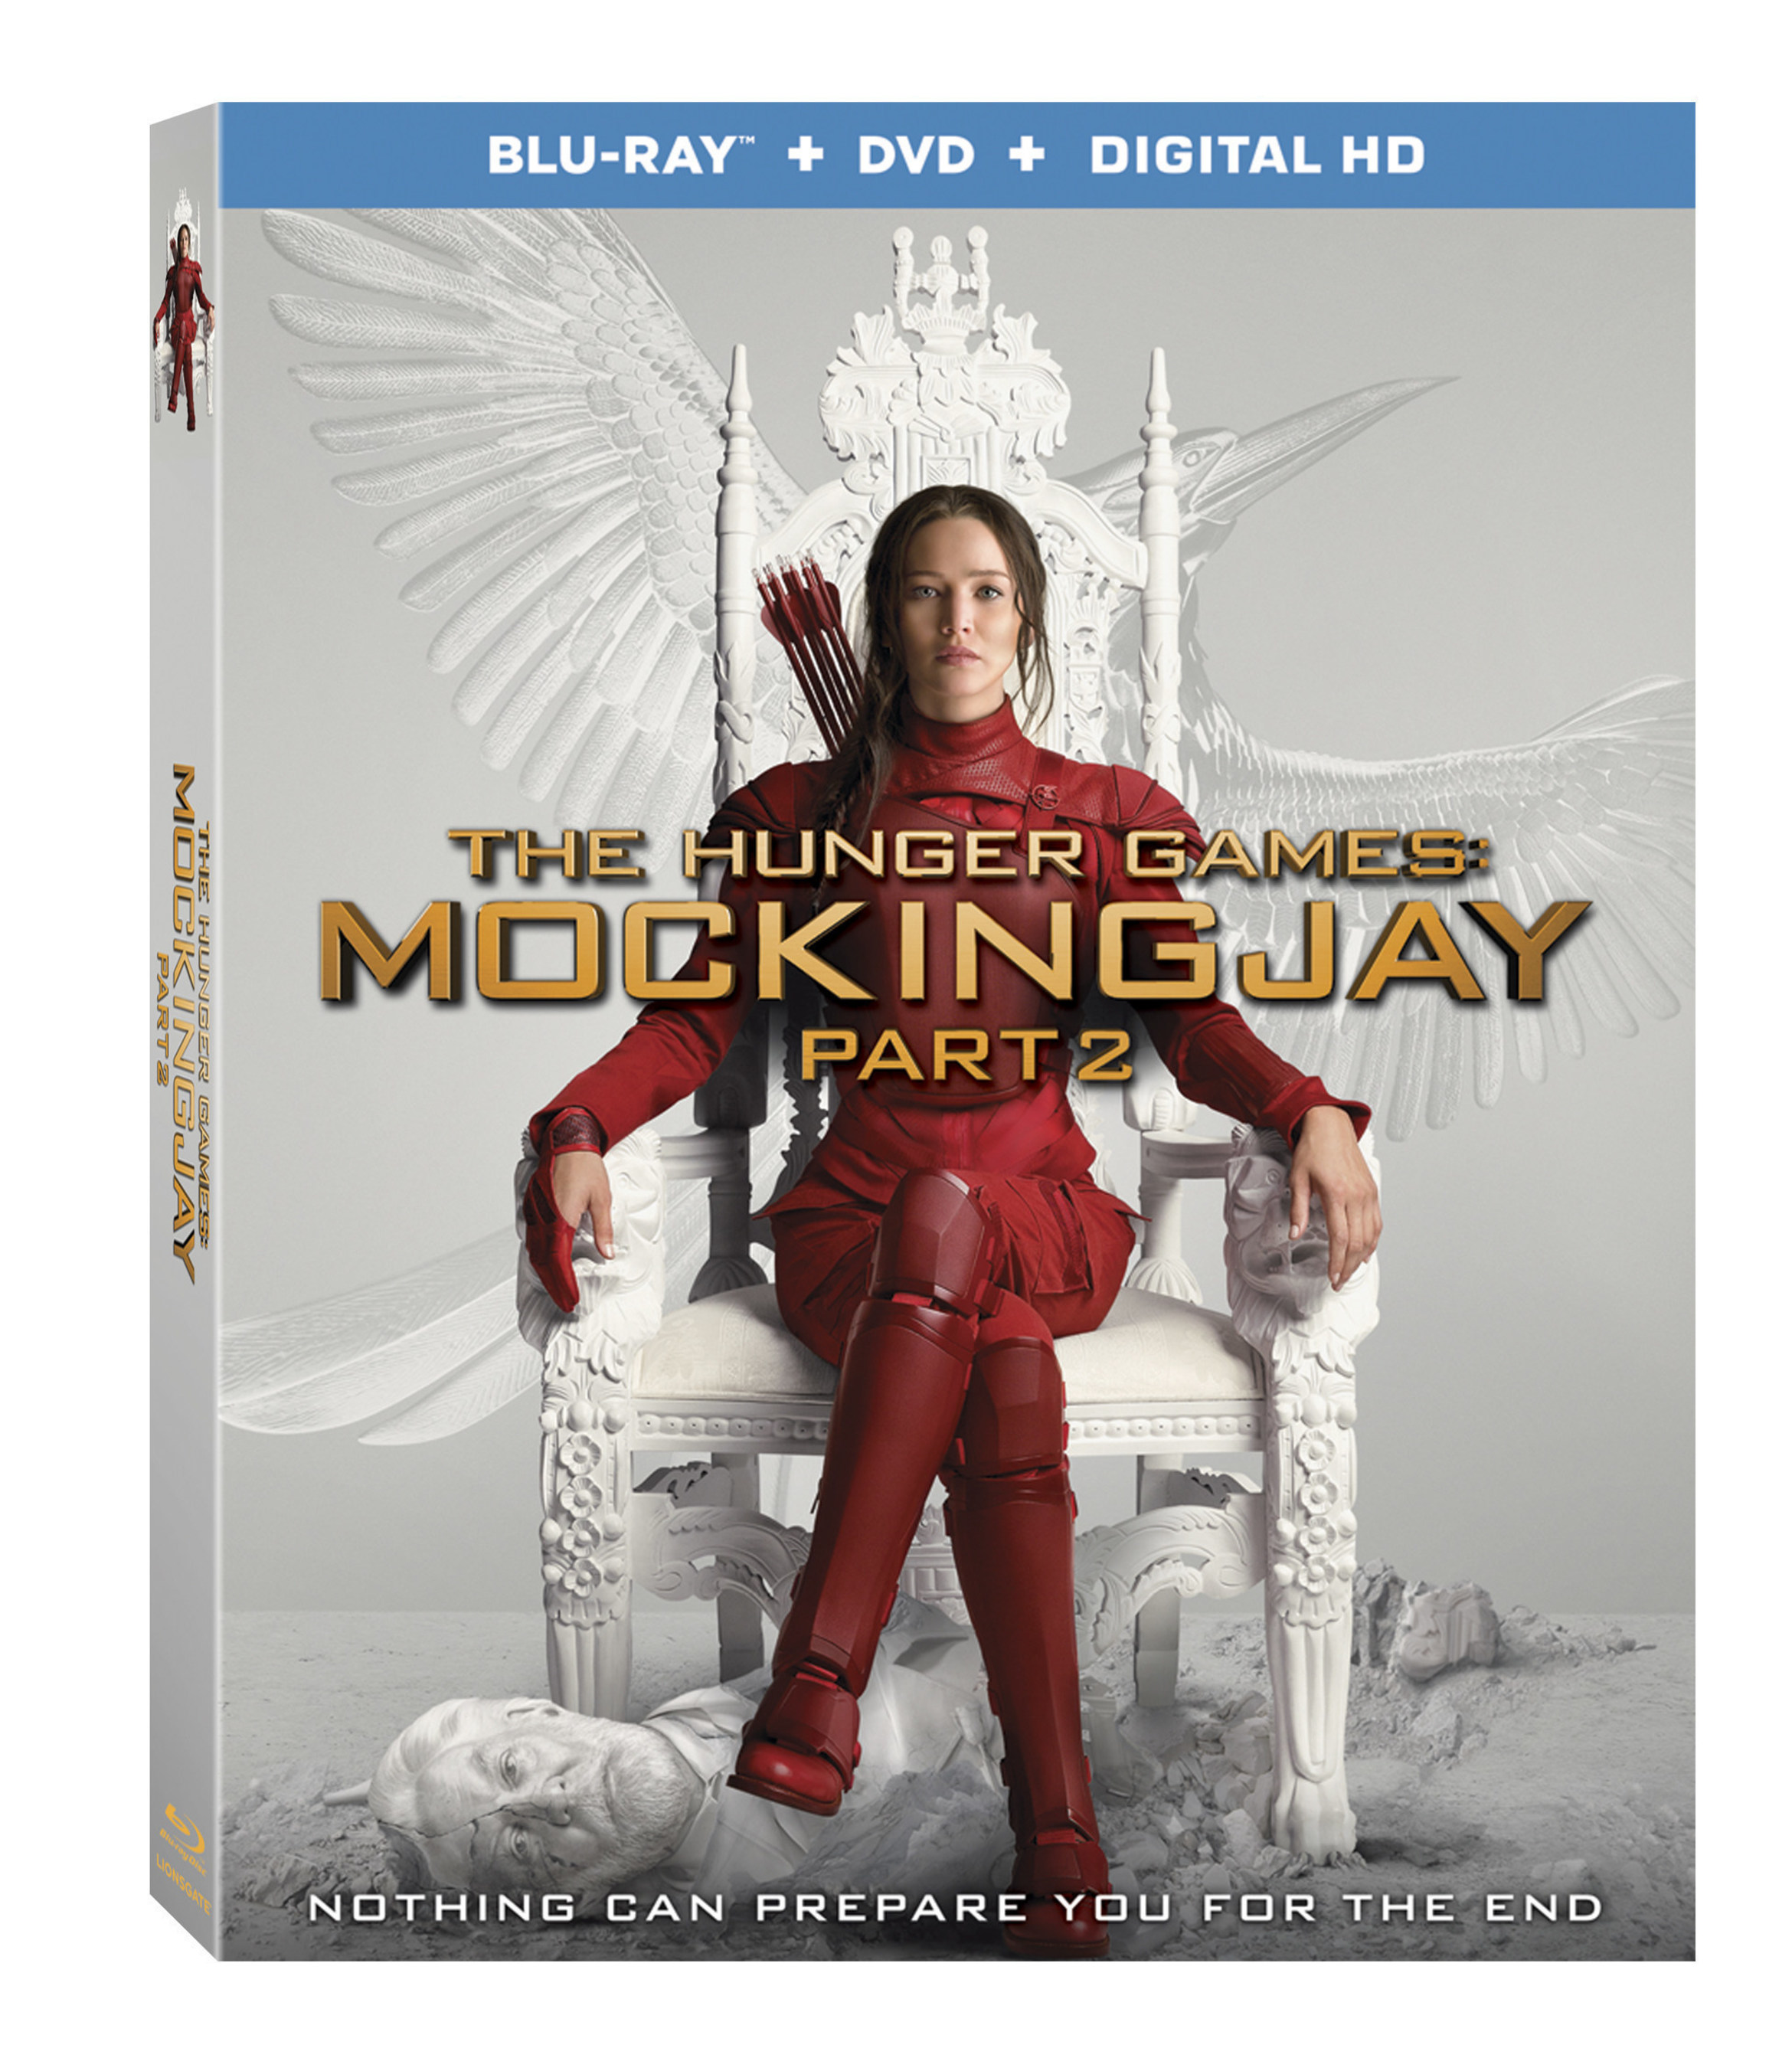 THE HUNGER GAMES: MOCKINGJAY PART 2 ARRIVES ON DIGITIAL HD ON MARCH 8 AND ON BLU-RAY COMBO PACK ON MARCH 22 FROM LIONSGATE